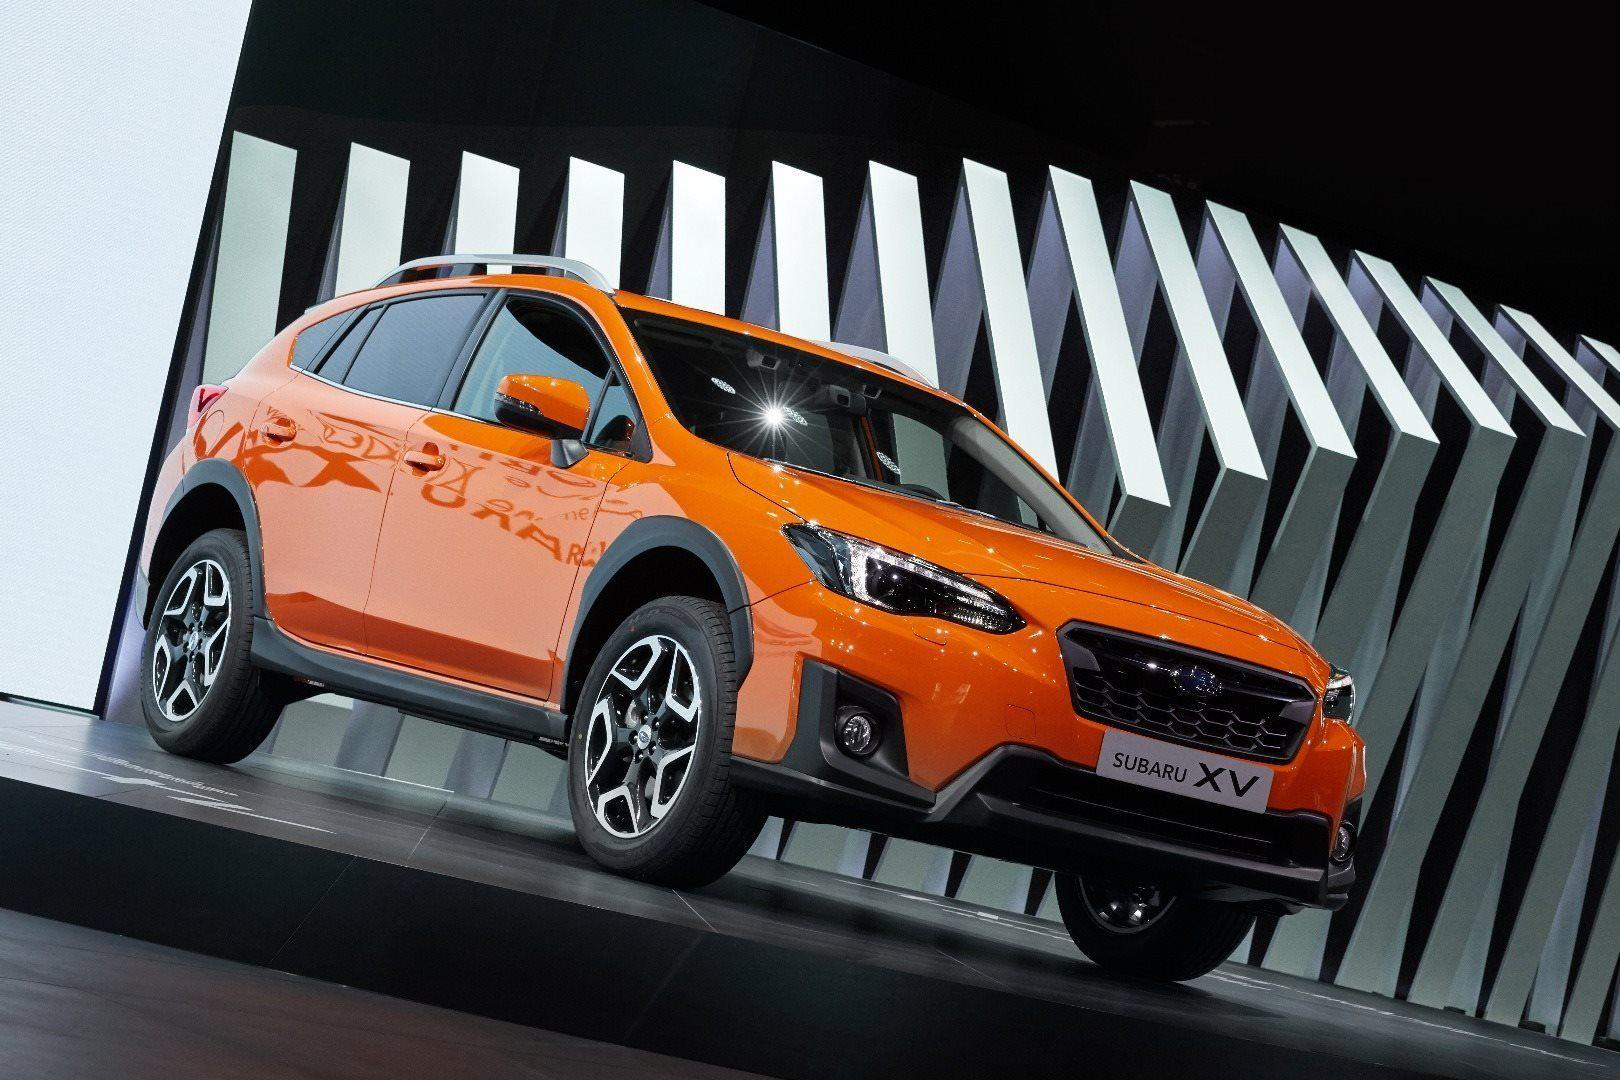 ALL-NEW SUBARU XV WINS JNCAP GRAND PRIX AWARD FOR TOP SAFETY SCORE